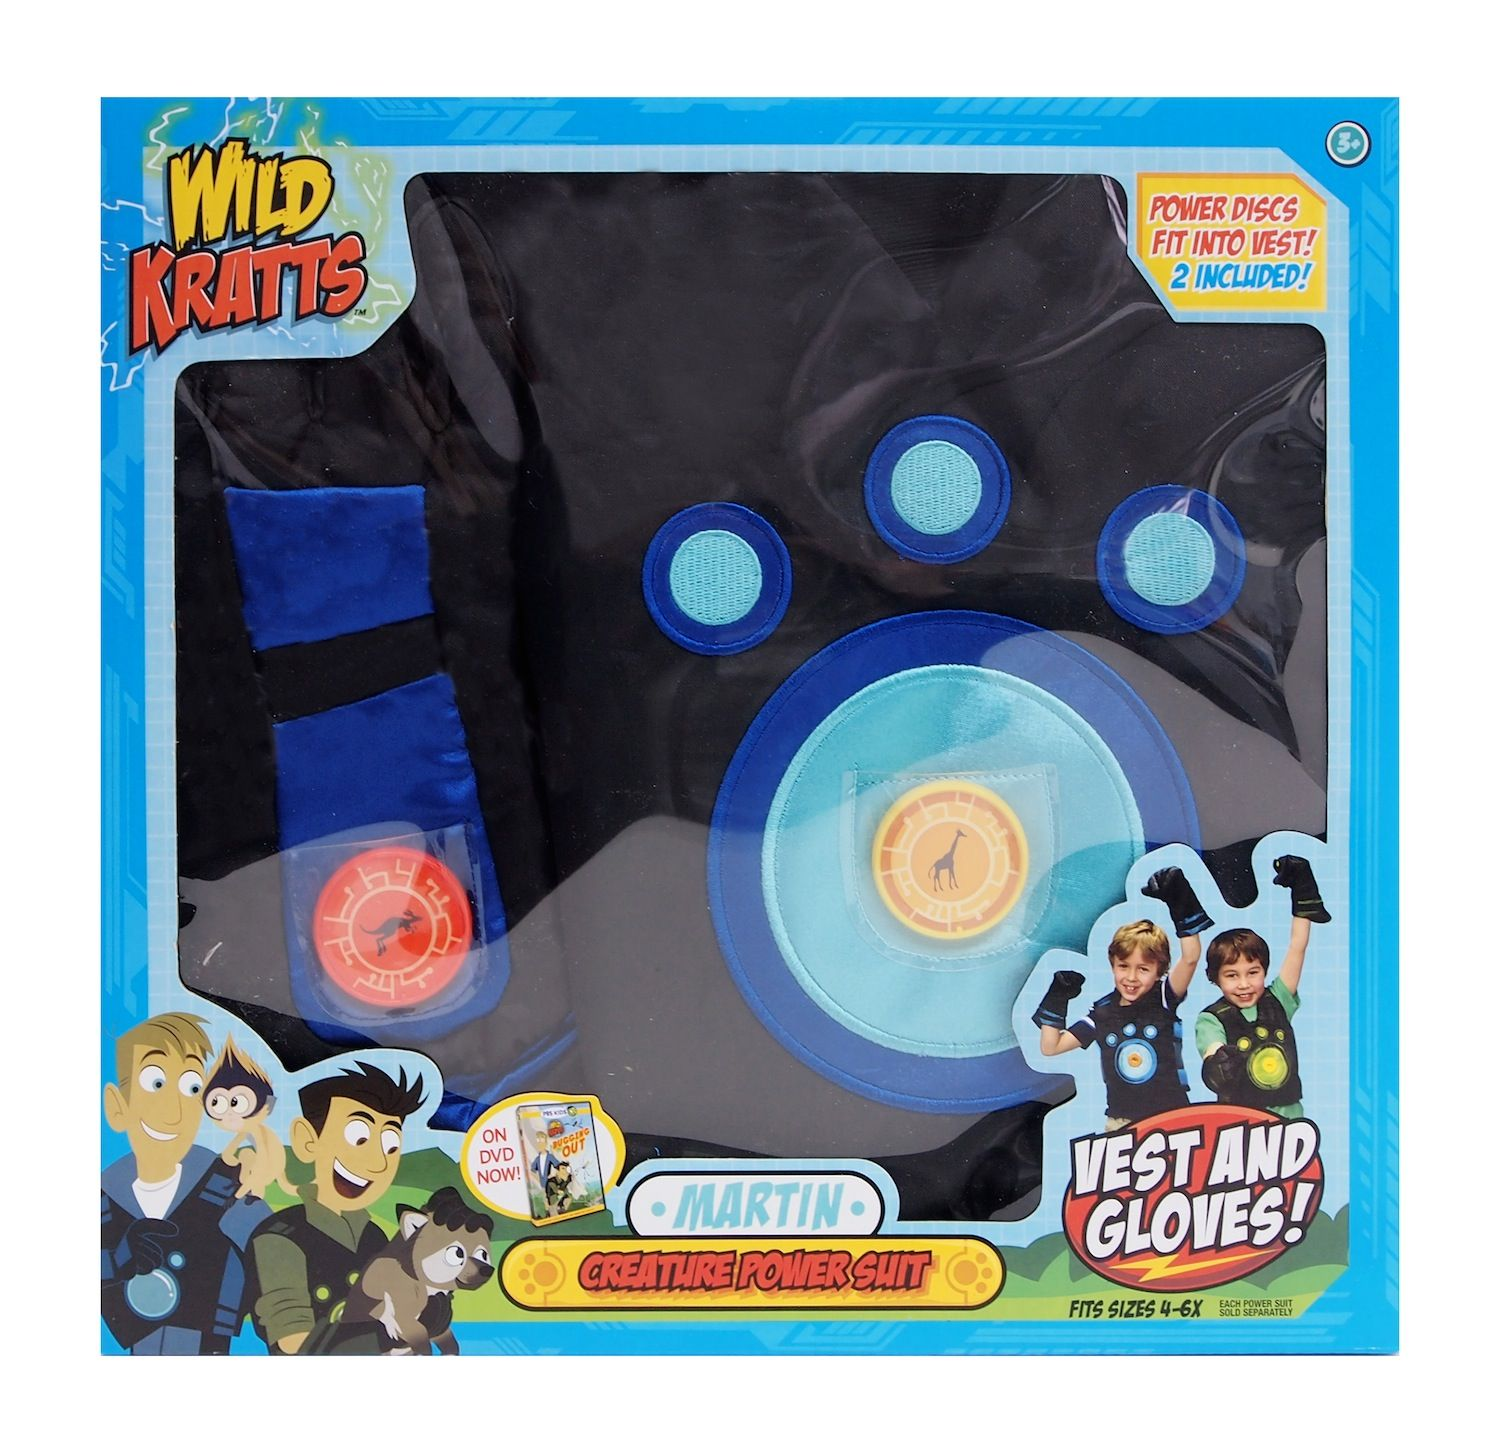 The Official Pbs Kids Shop Wild Kratts Blue Creature